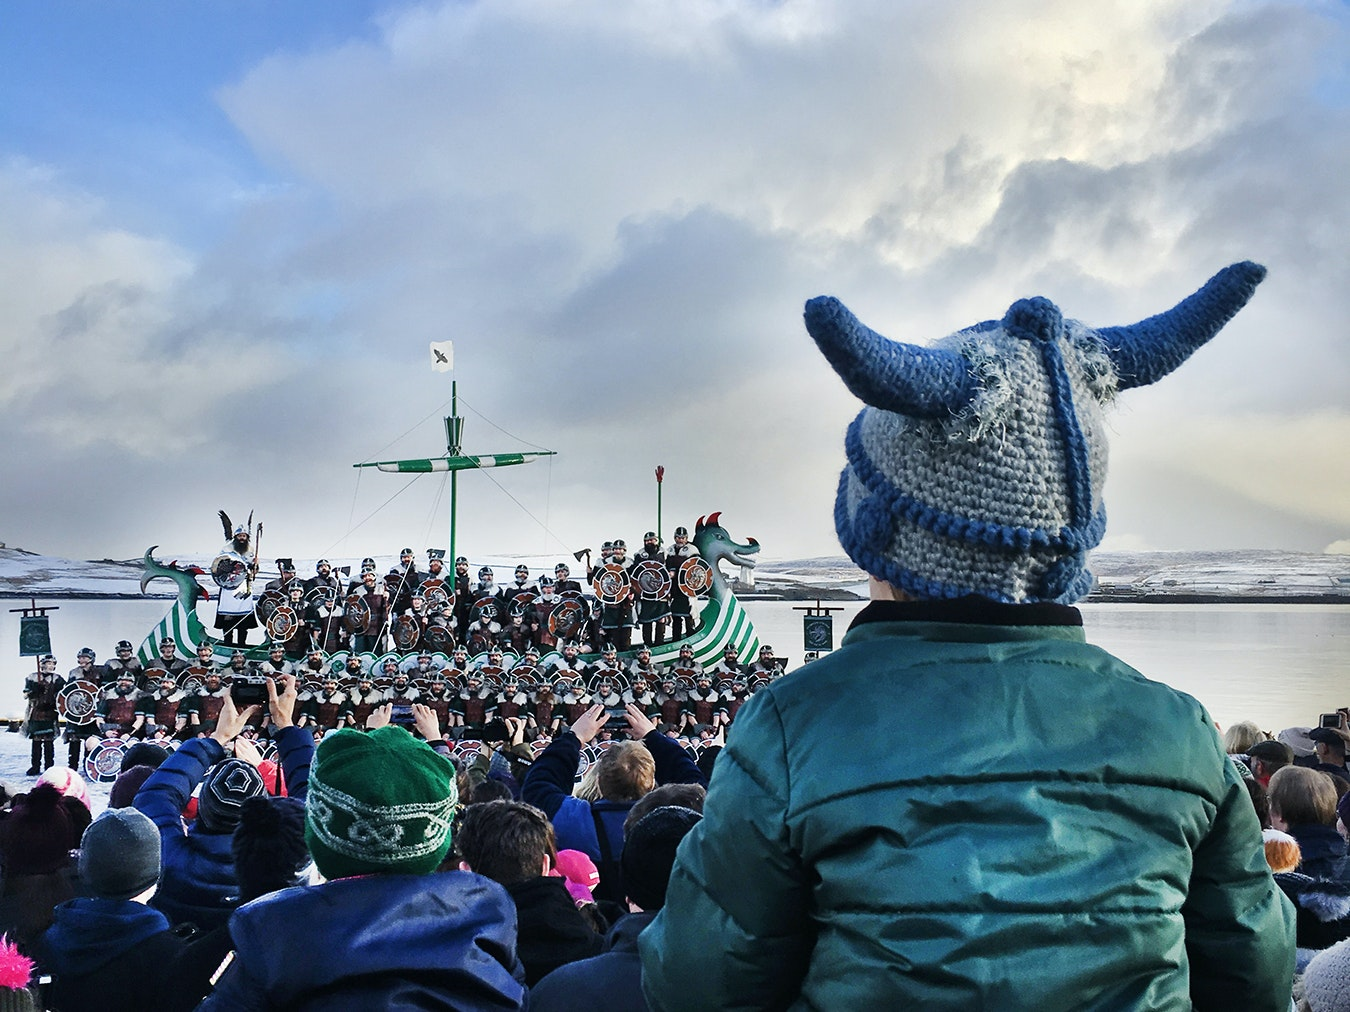 Crowds gather to see the 2019 Jarl Squad pose for photos with their galley ship in Lerwick, Shetland.